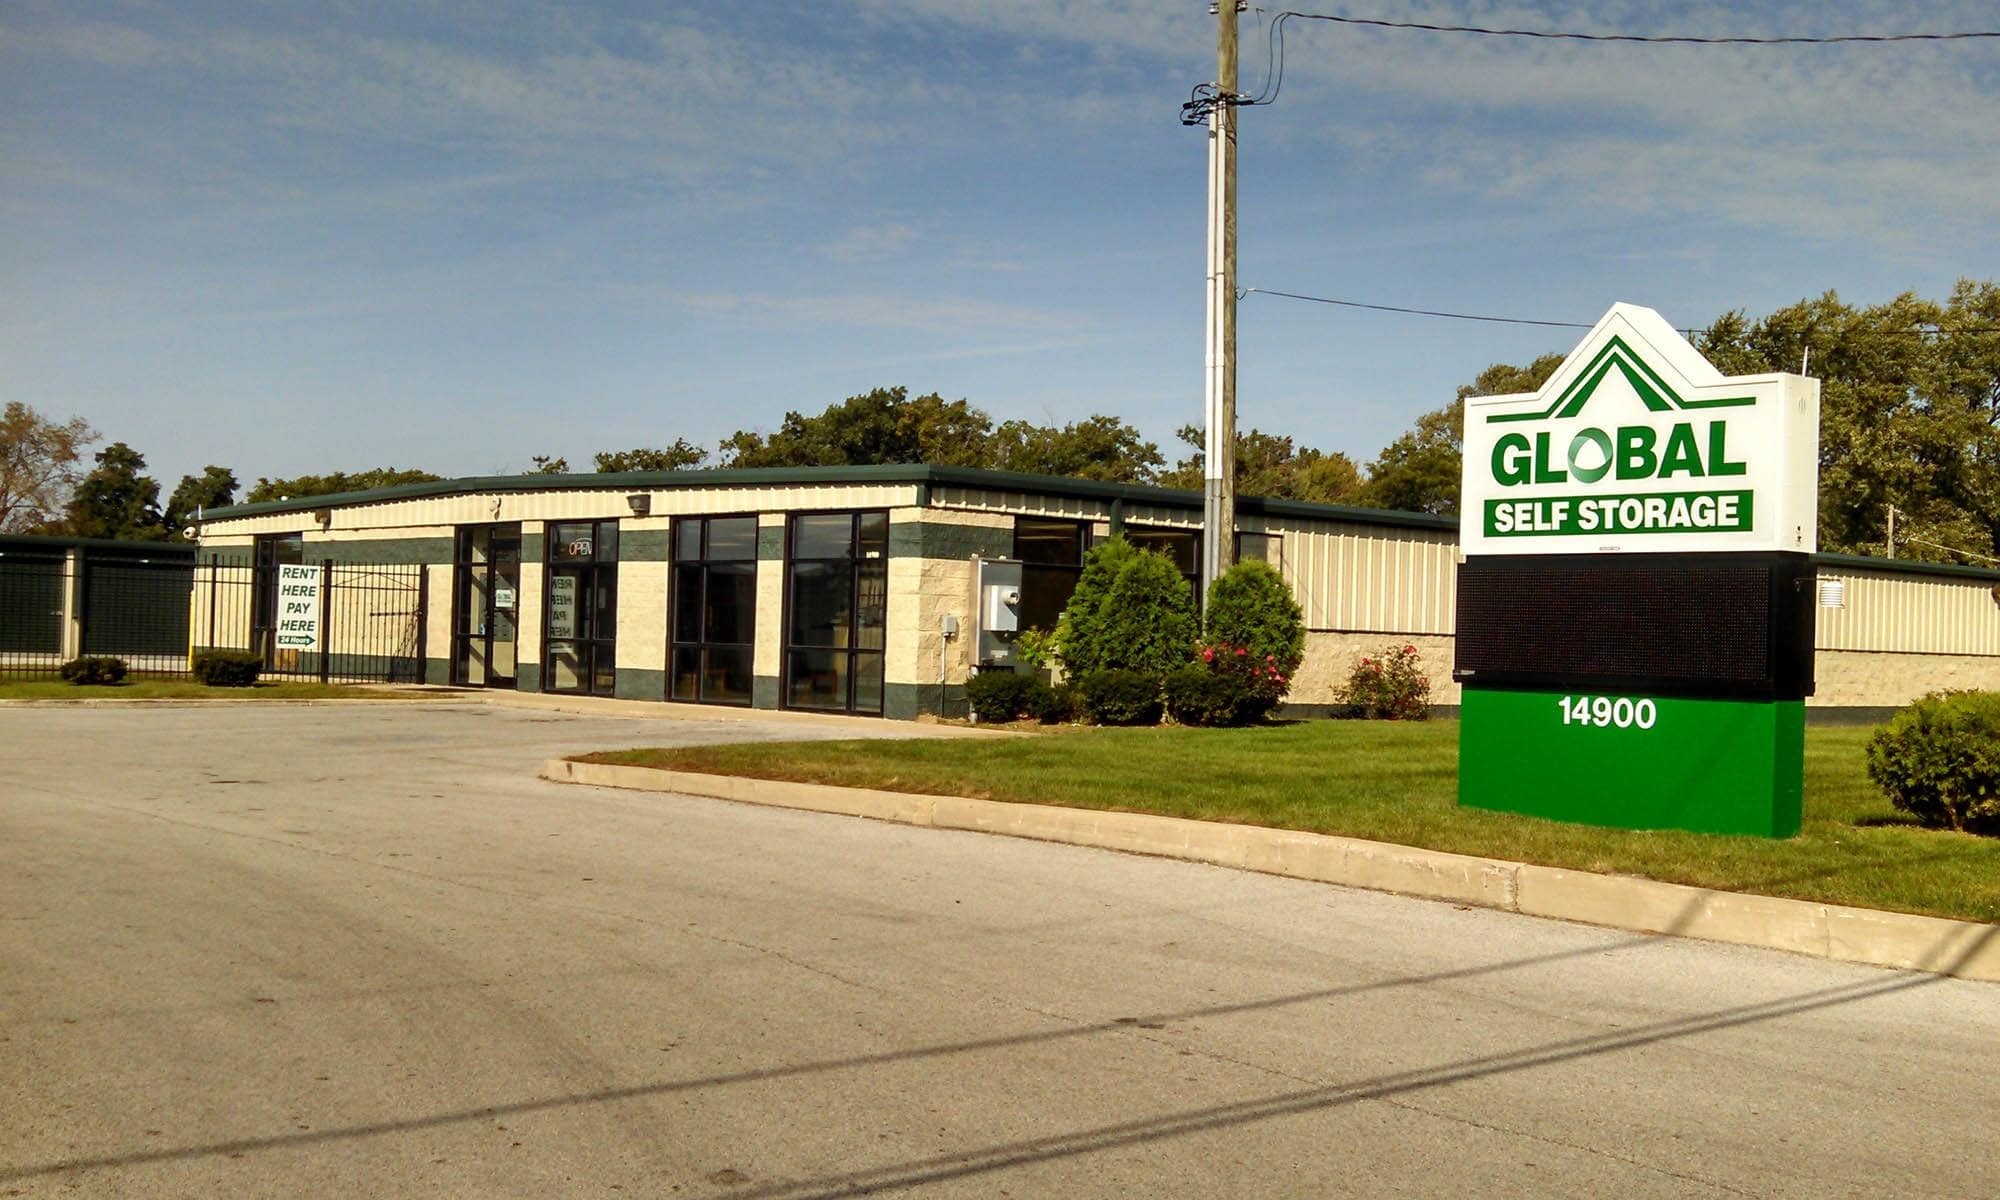 Self Storage available at Global Self Storage in Dolton, IL